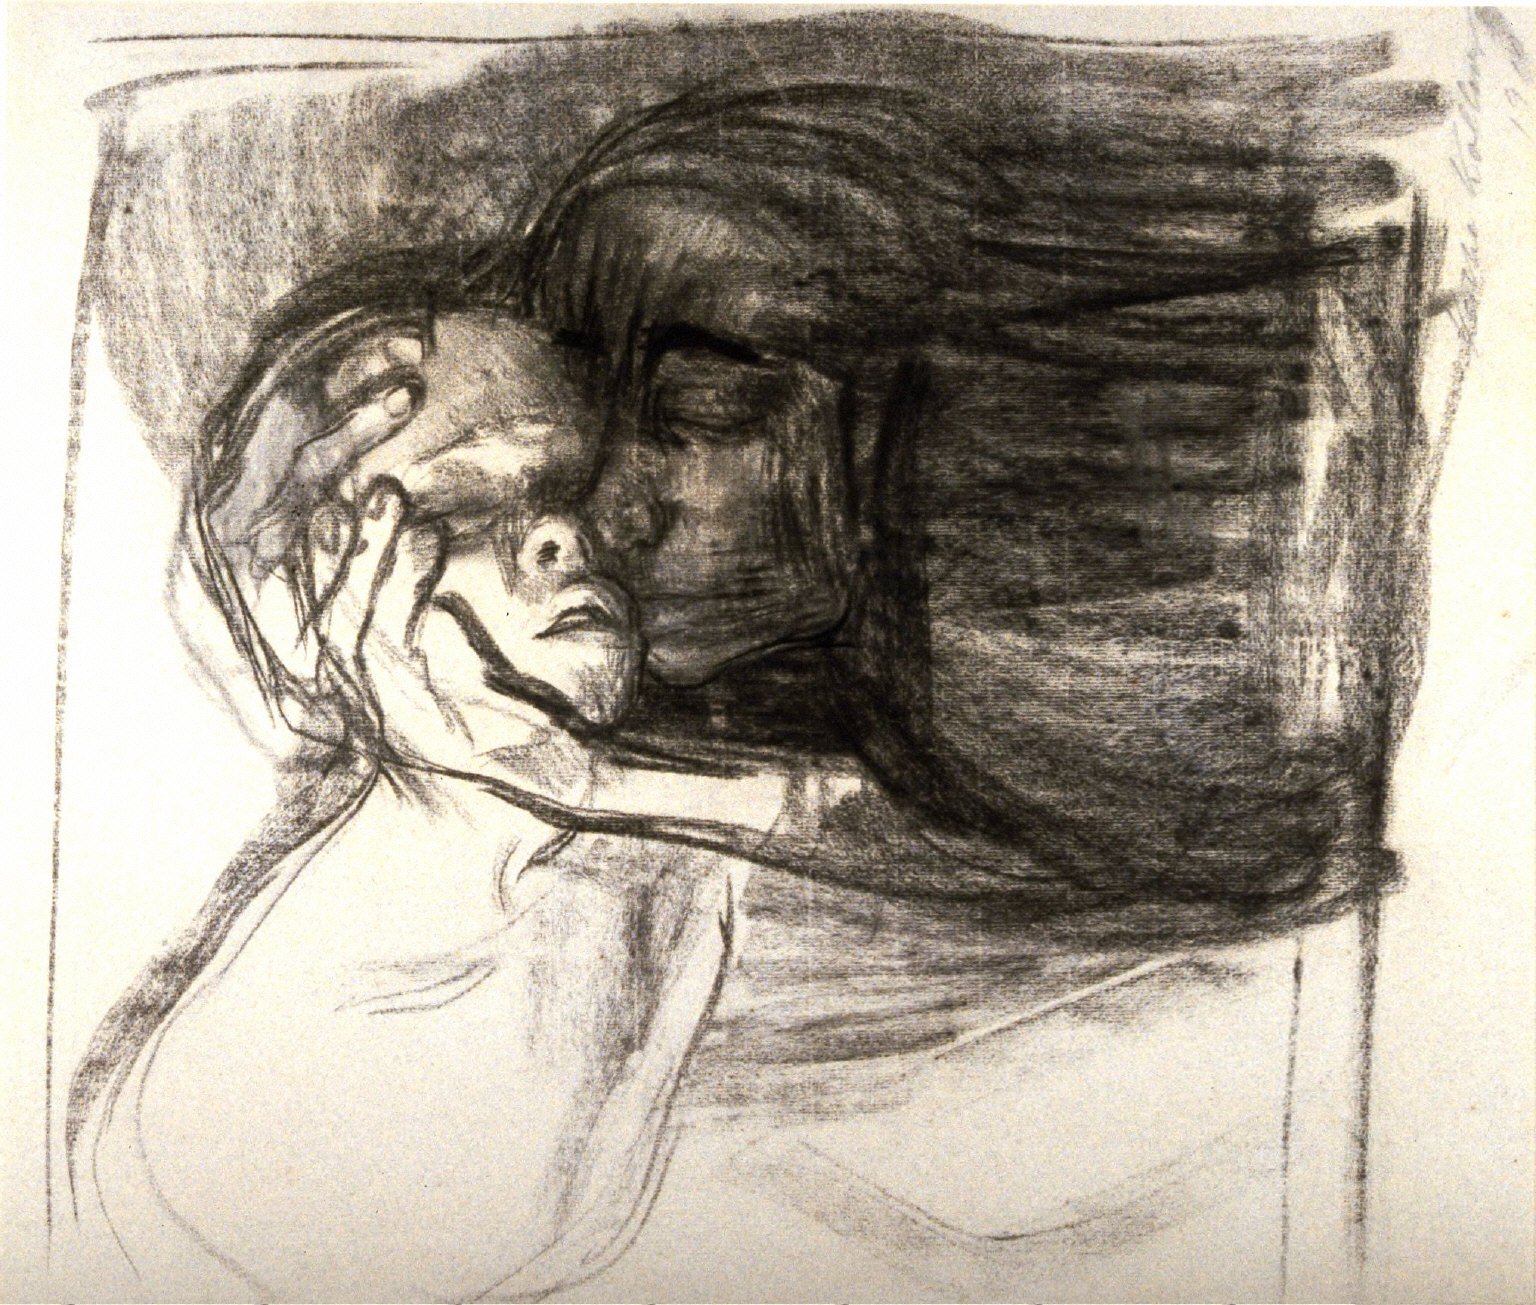 Abschied (Farewell), study for the etching, Tod, Frau und Kind (Death, Mother, and Child)